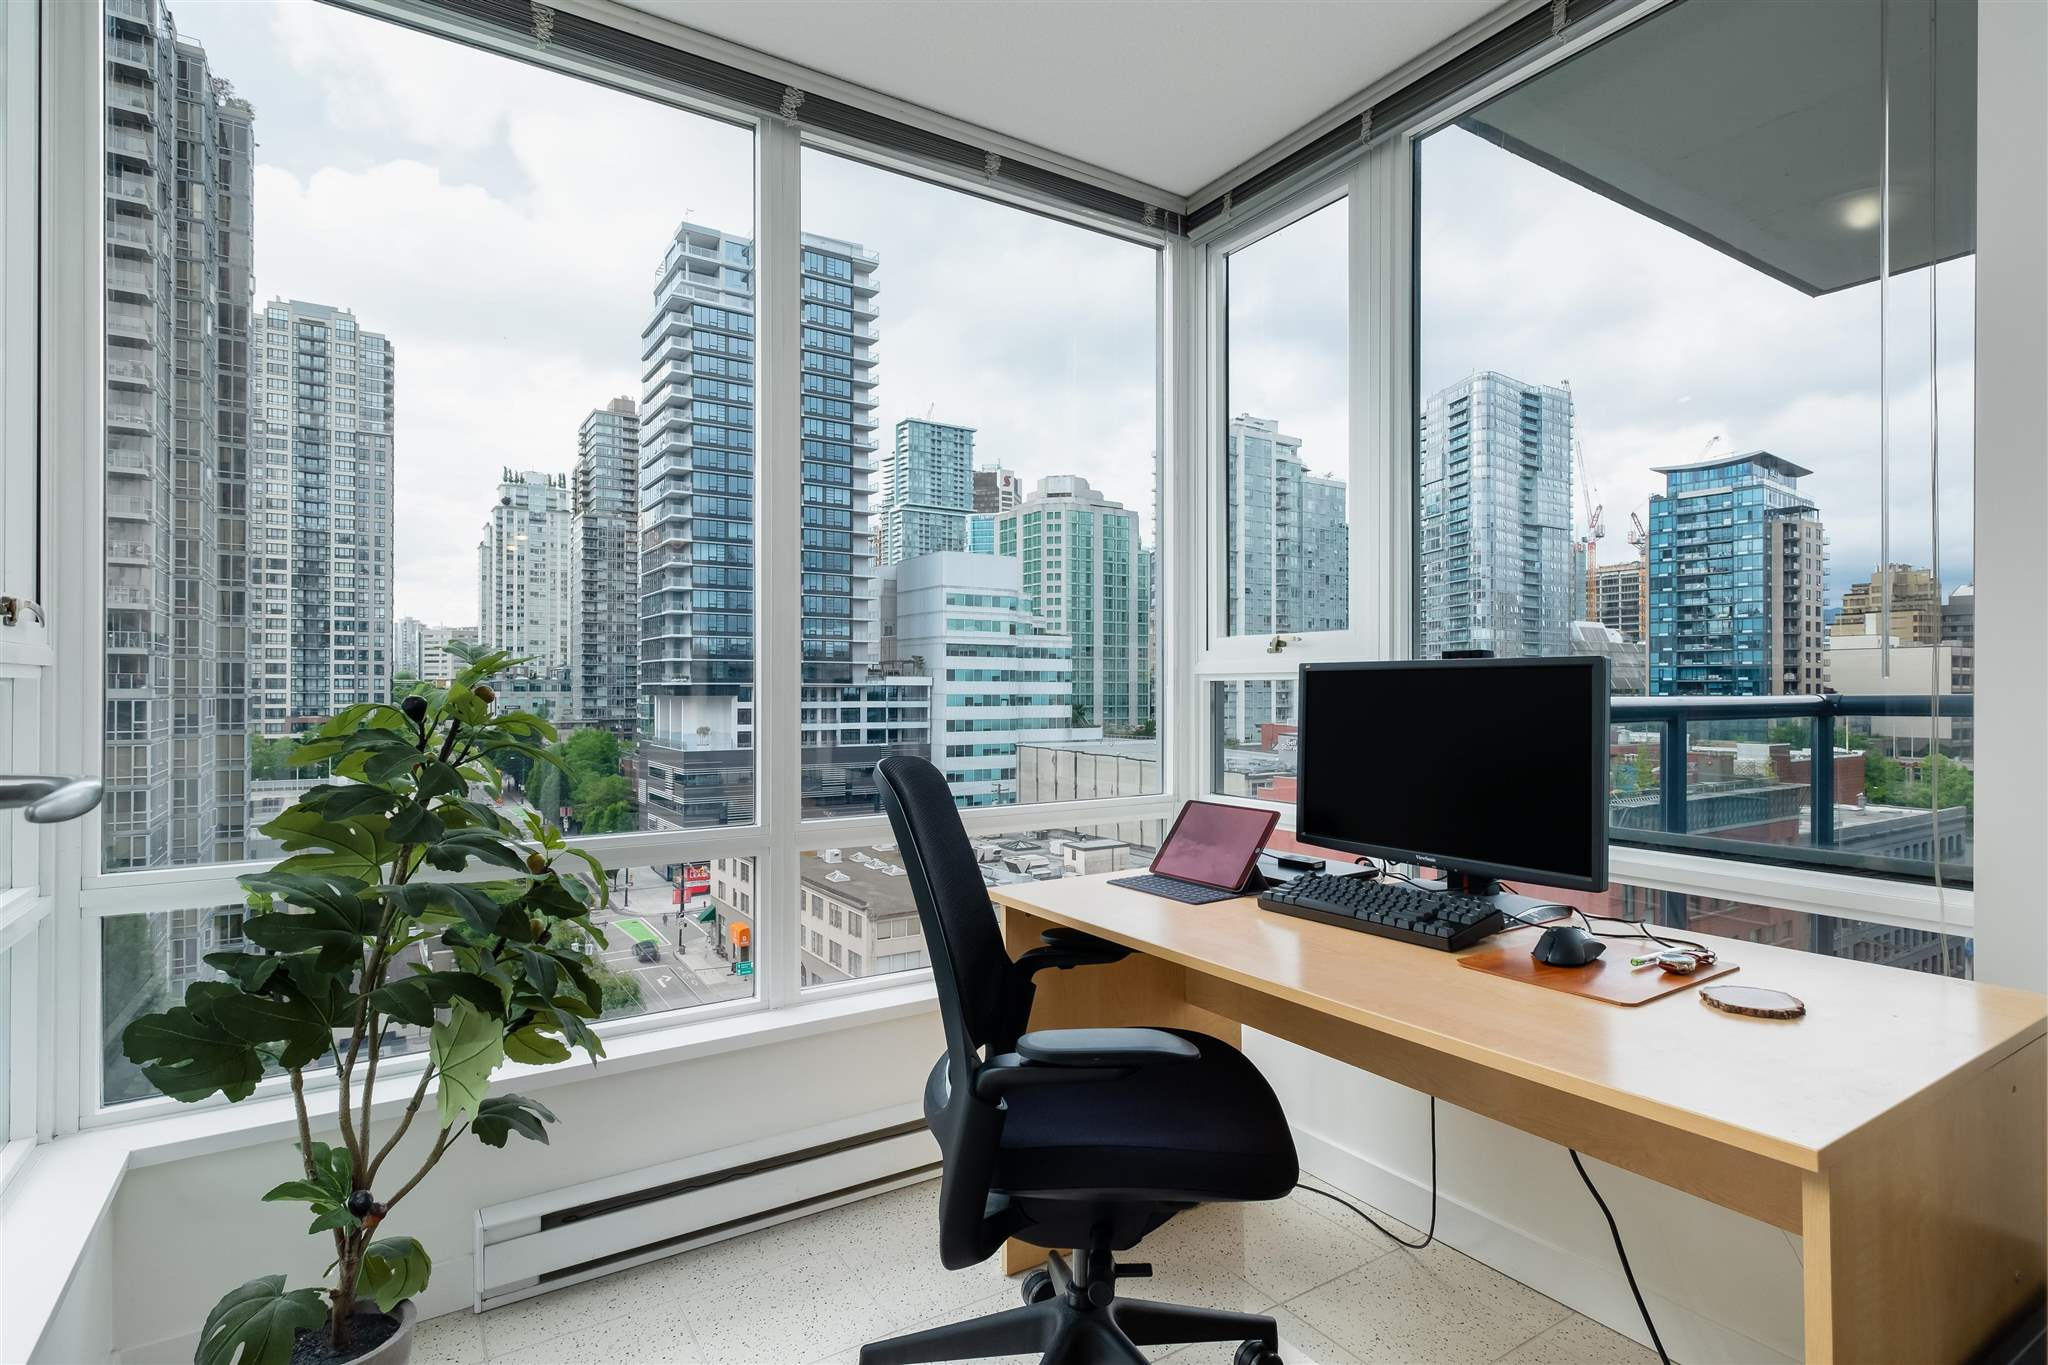 1508 928 BEATTY STREET - Yaletown Apartment/Condo for sale, 1 Bedroom (R2604287) - #1